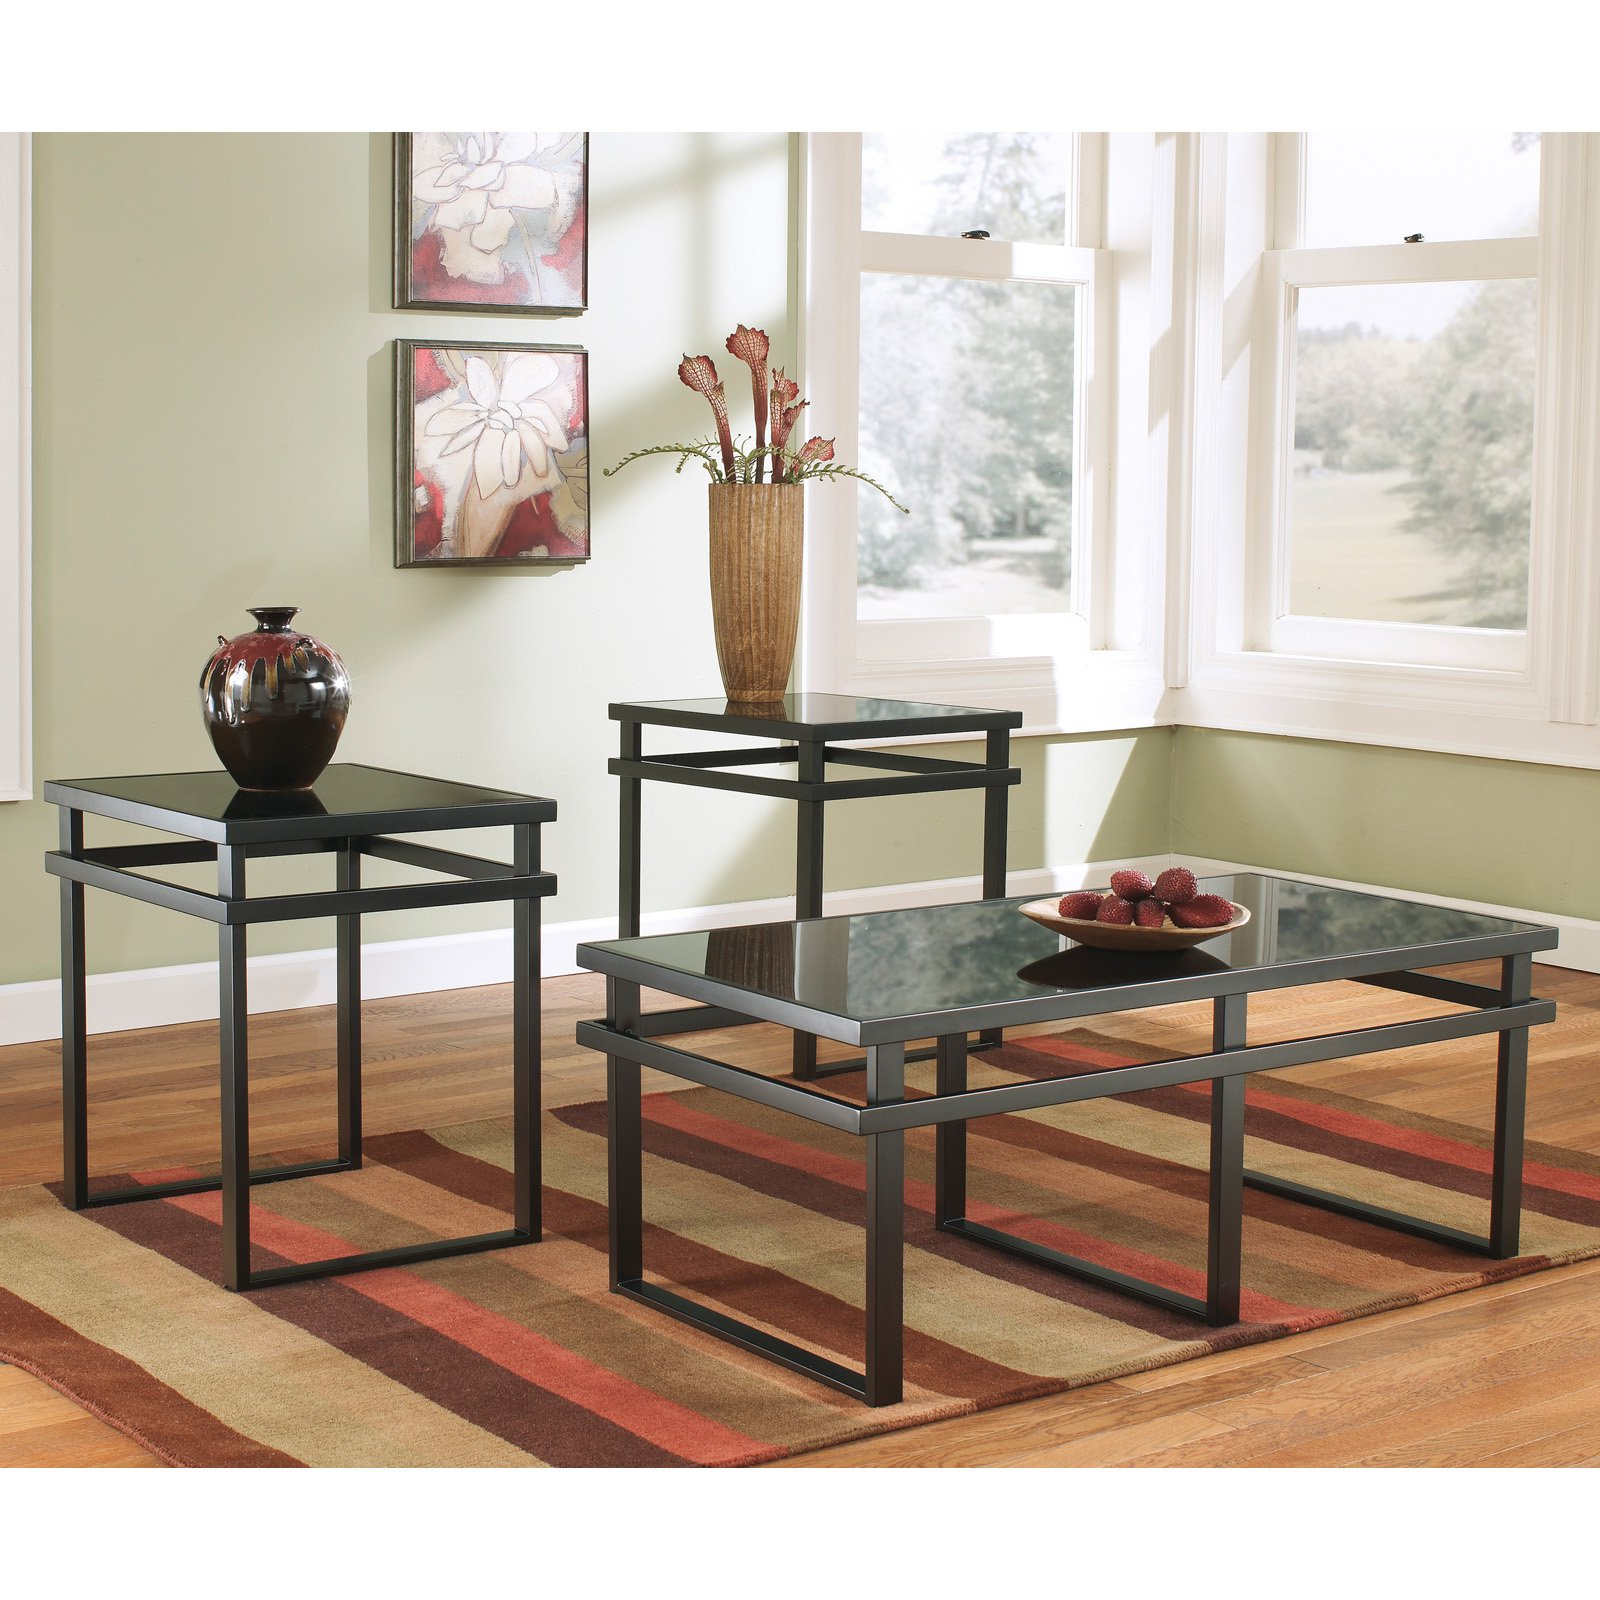 Ashley Mallacar Piece Coffee Table Set In Black T: Ashley T180-13 Laney Signature Design Occasional Table